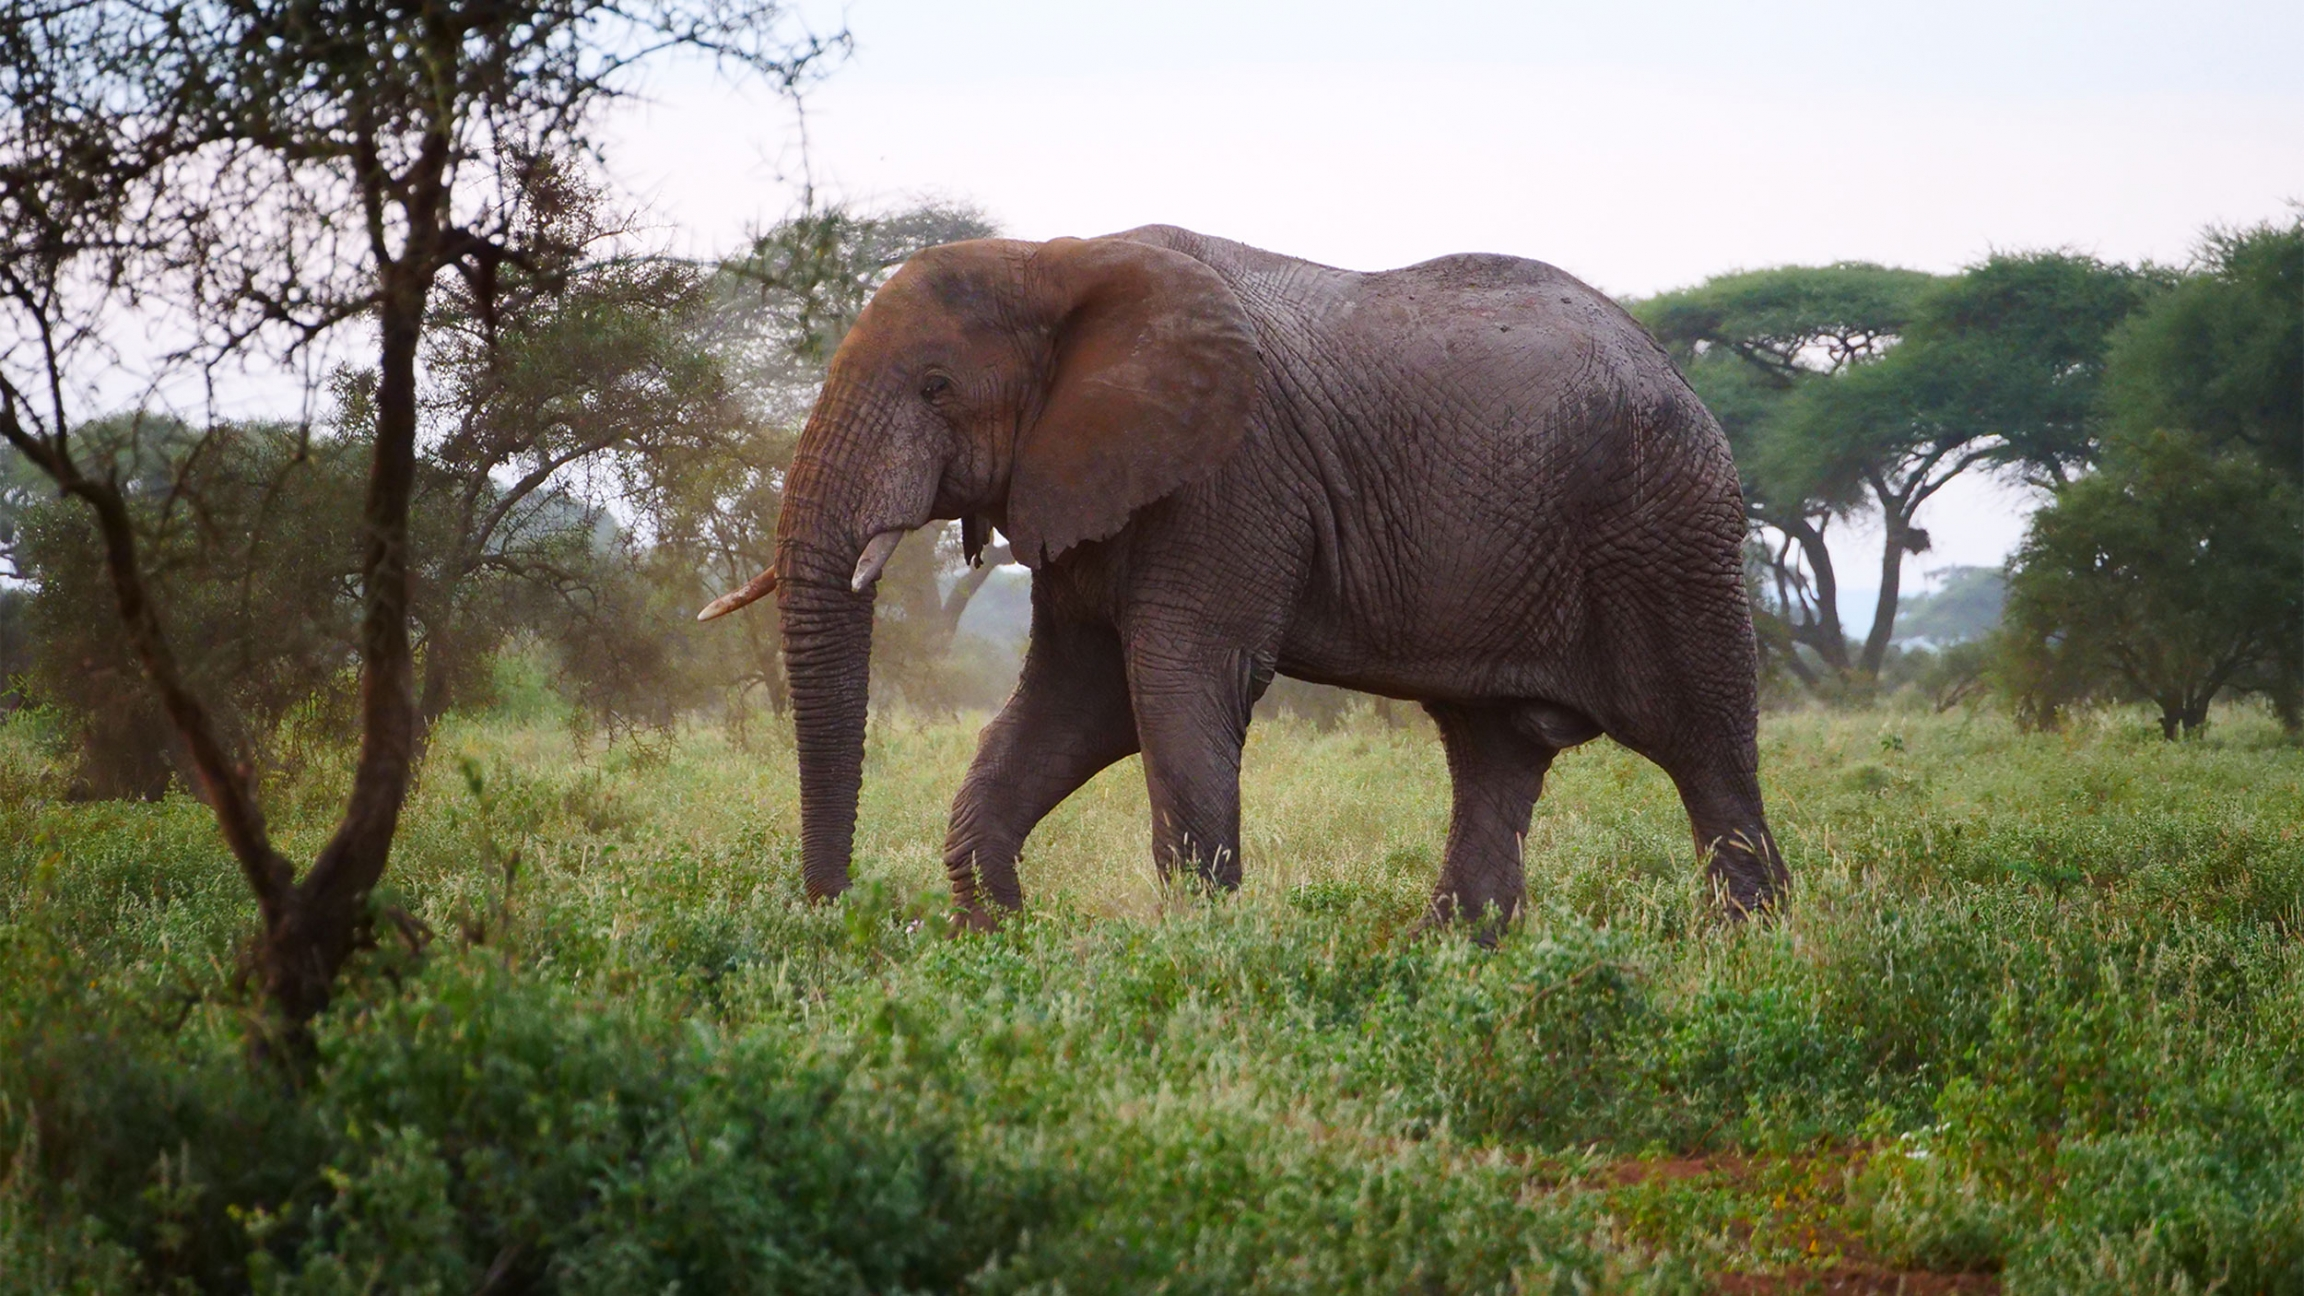 A large elephant among green trees and green grass